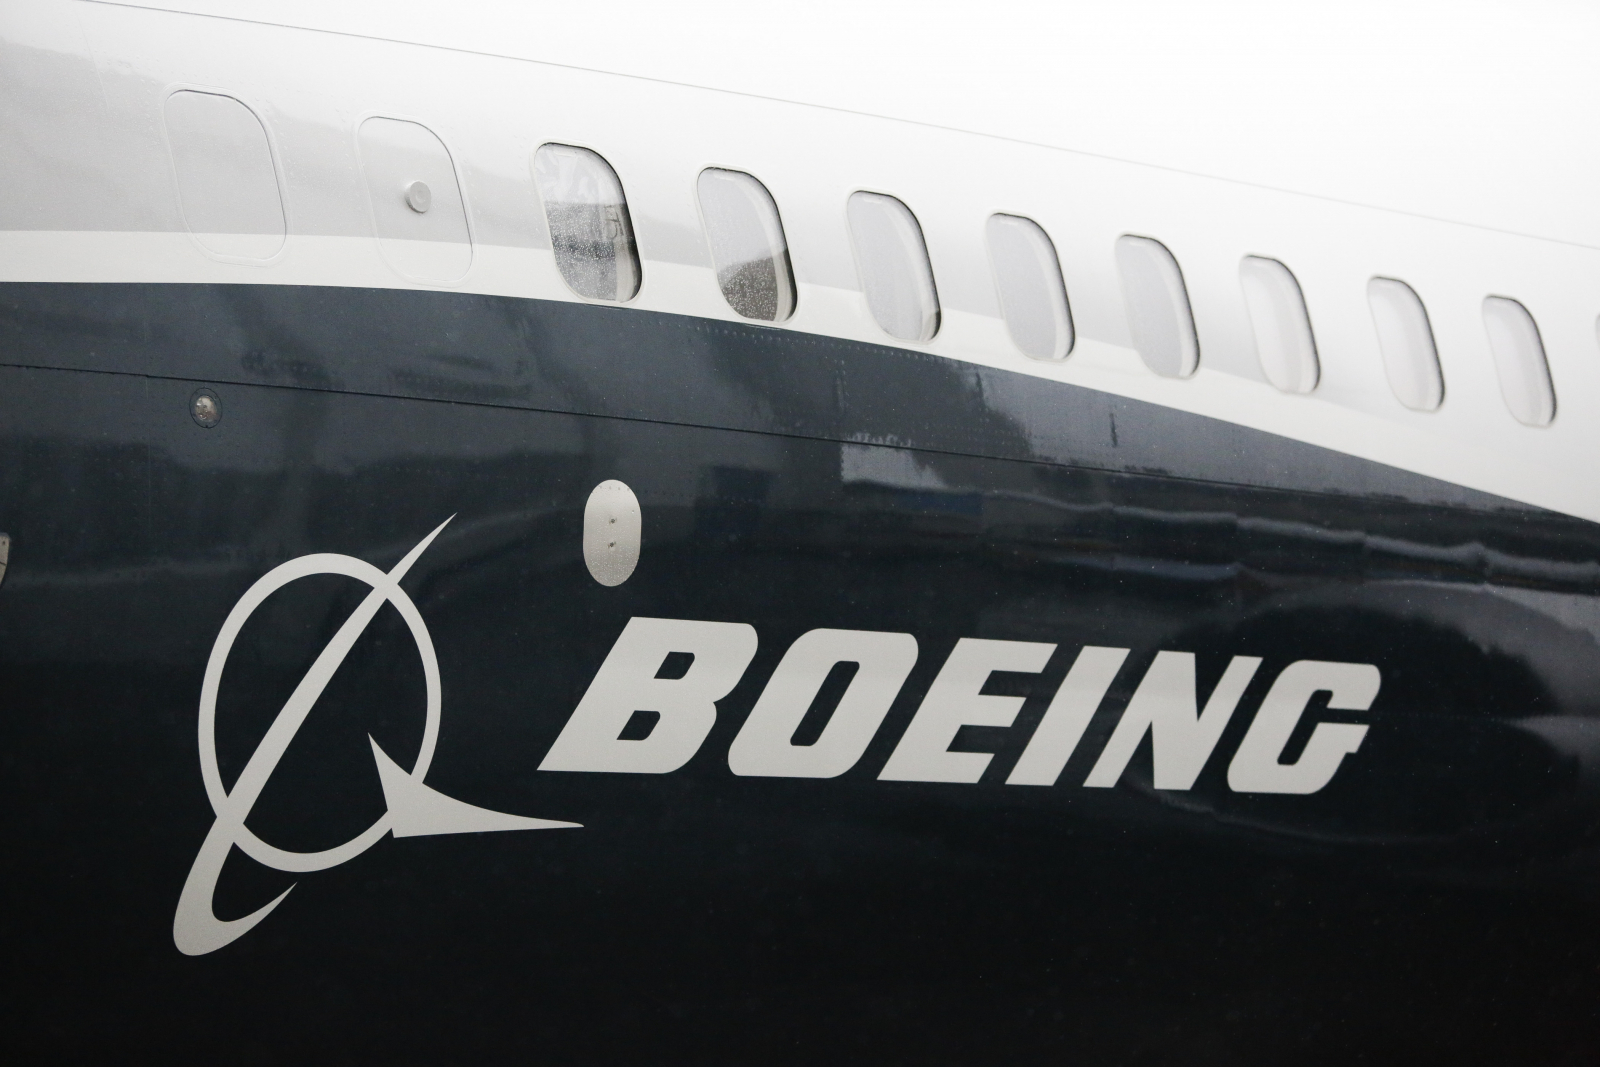 Woman sues Boeing for $276M over Ethiopian Airlines crash that killed her husband